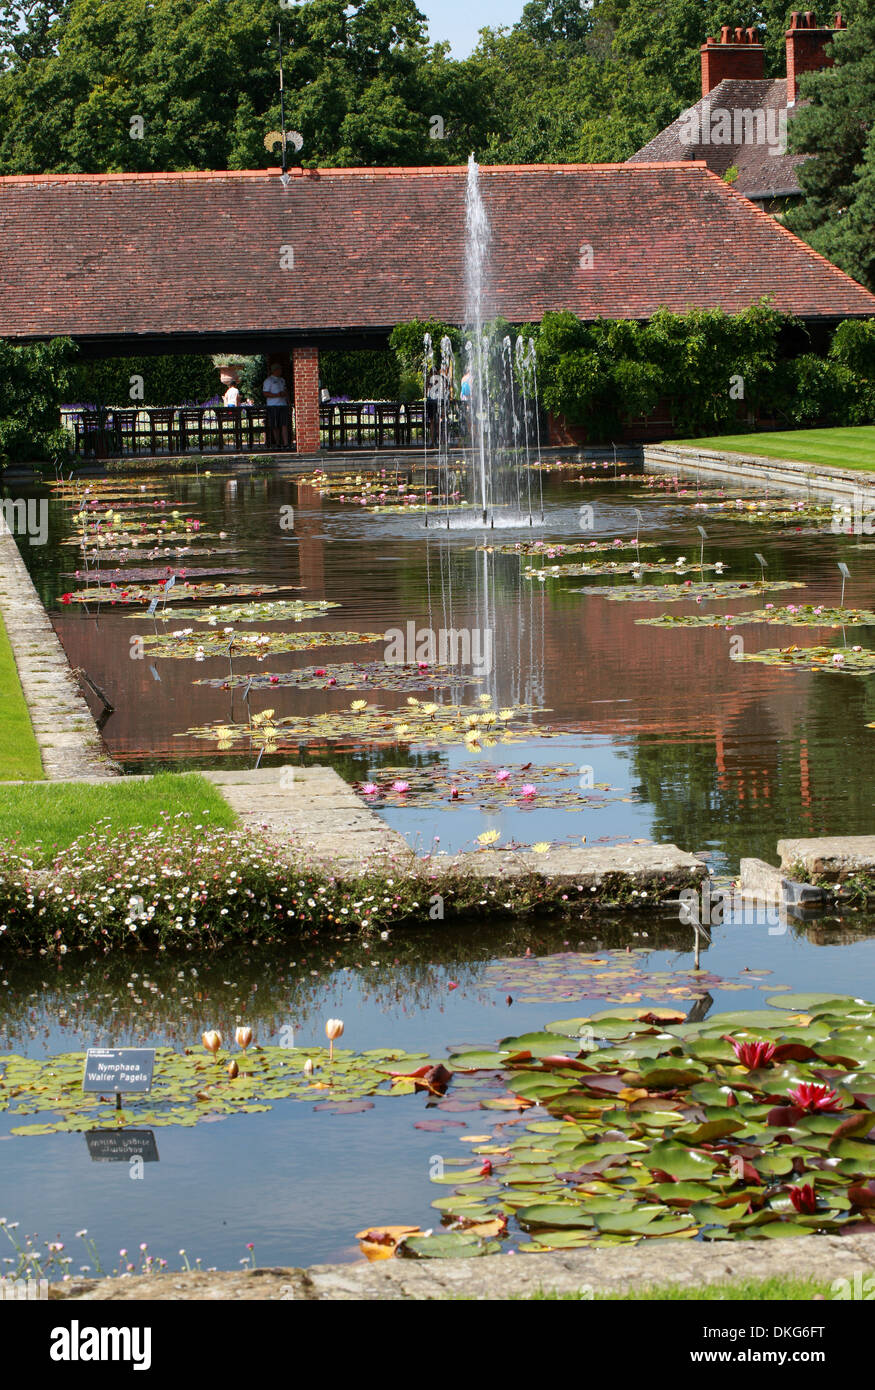 Waterlily Pond, Royal Horticultural Gardens Wisley, Woking, Surrey. - Stock Image